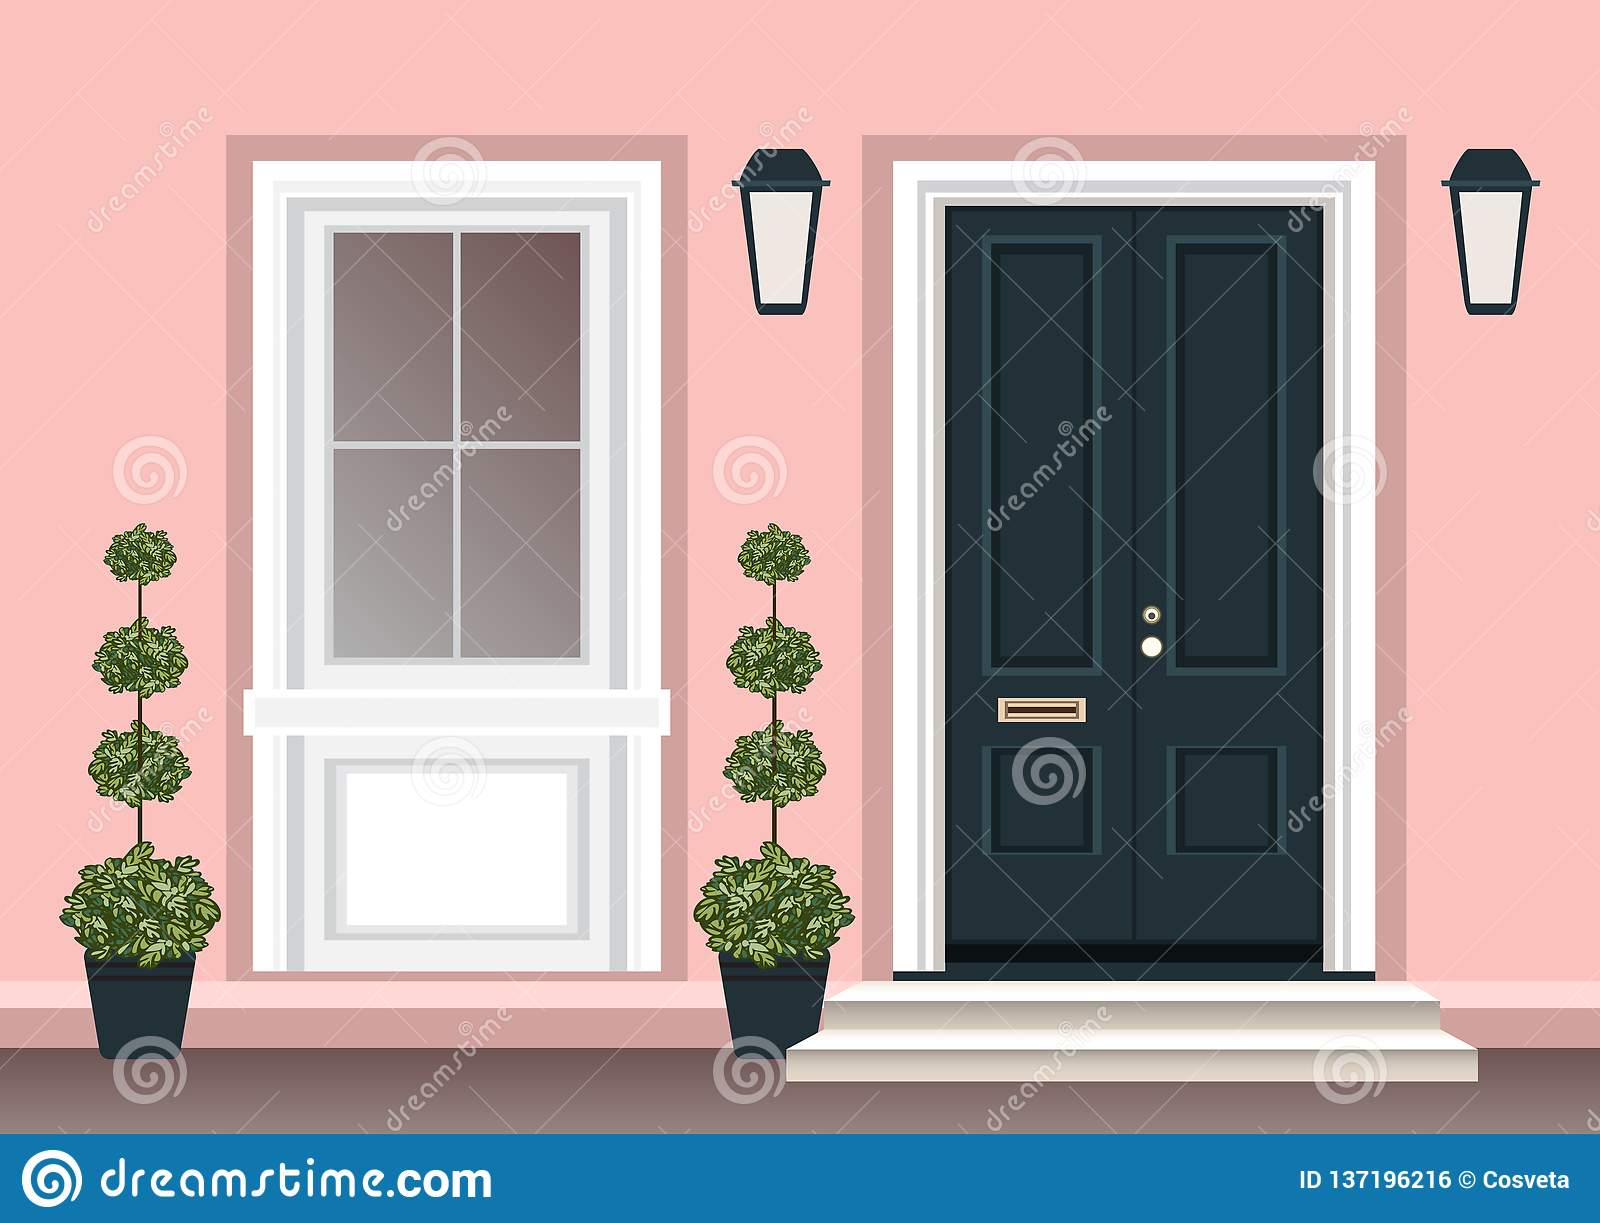 House Door Front With Doorstep And Steps Porch Window Lamp Flowers In Pot Building Entry Facade Exterior Entrance Design Stock Vector Illustration Of Entrance Banner 137196216